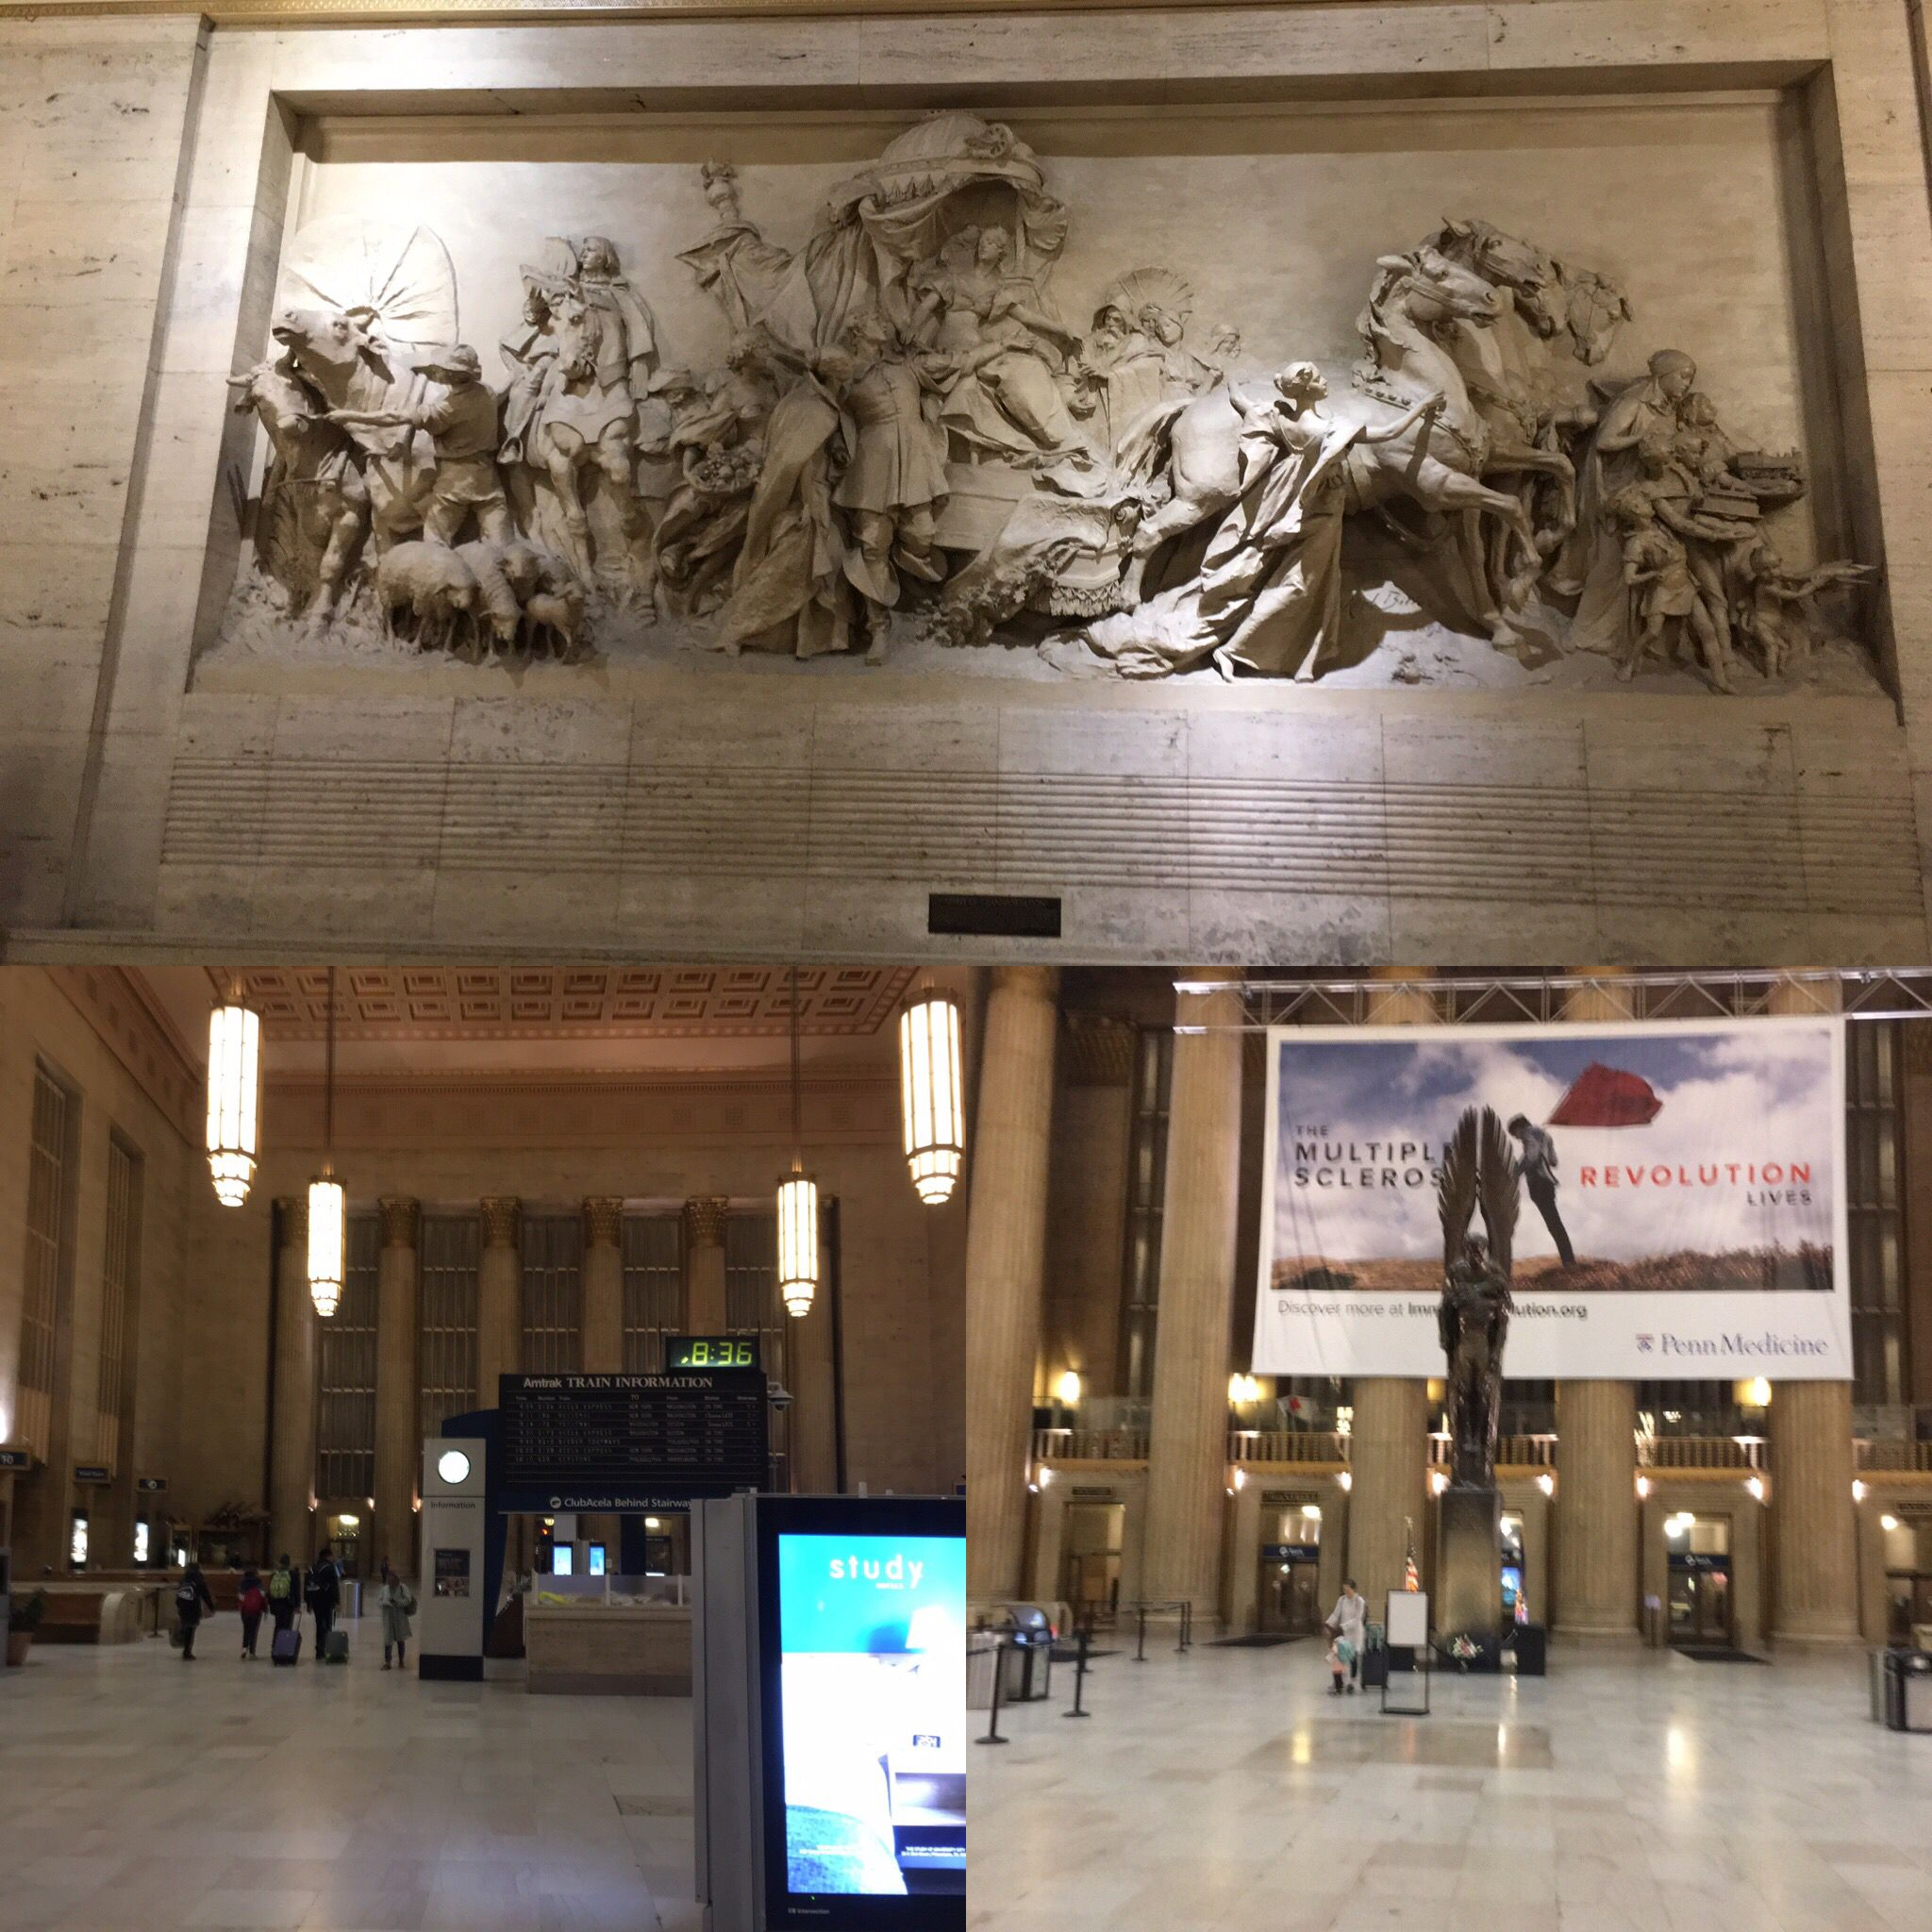 The Philadelphia Train Station  What an amazing building